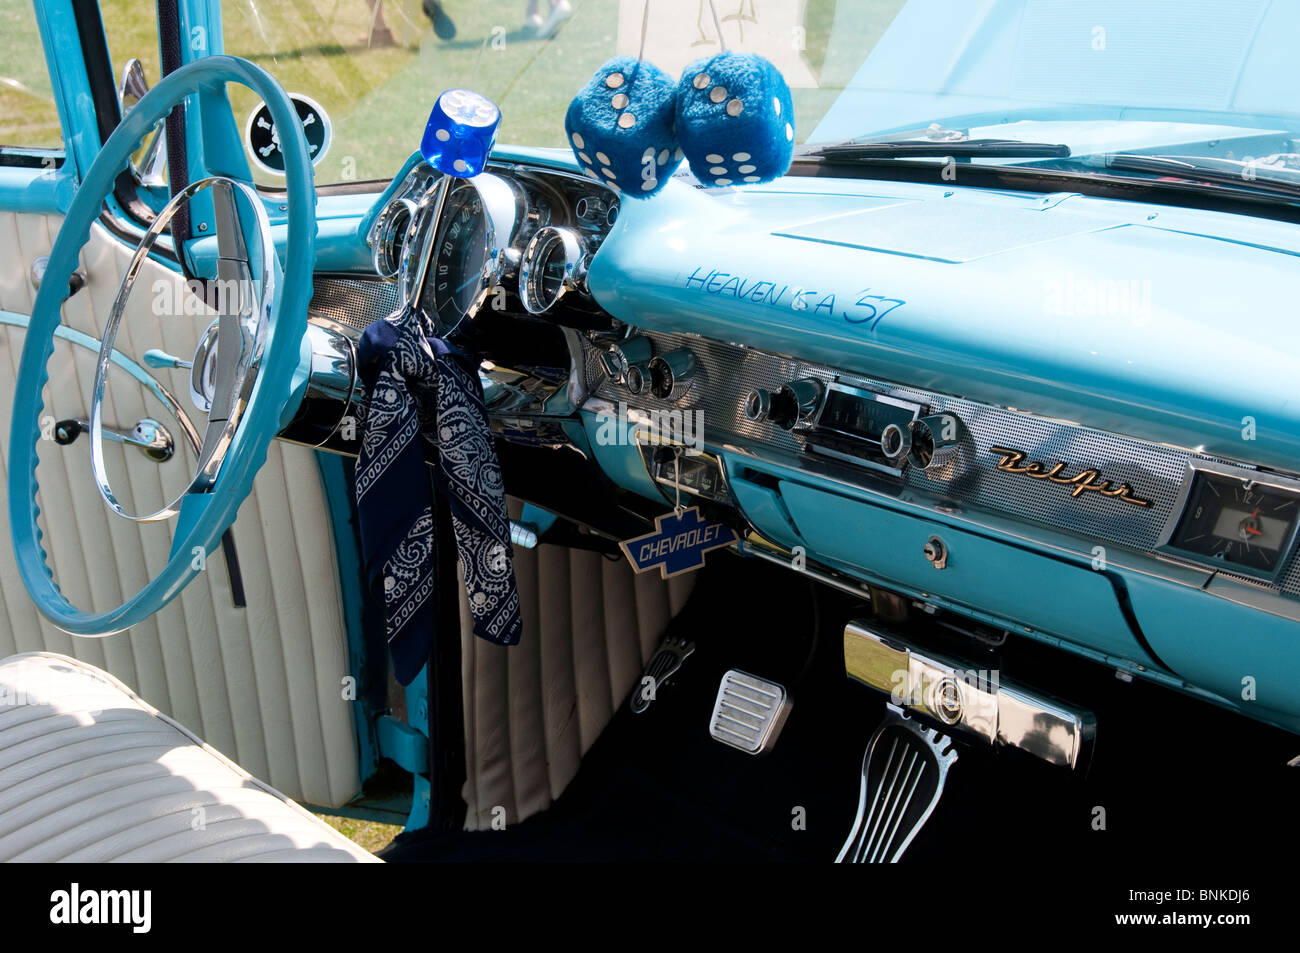 Front seat of a Classic 1957 Chevrolet Bel Air car - Stock Image